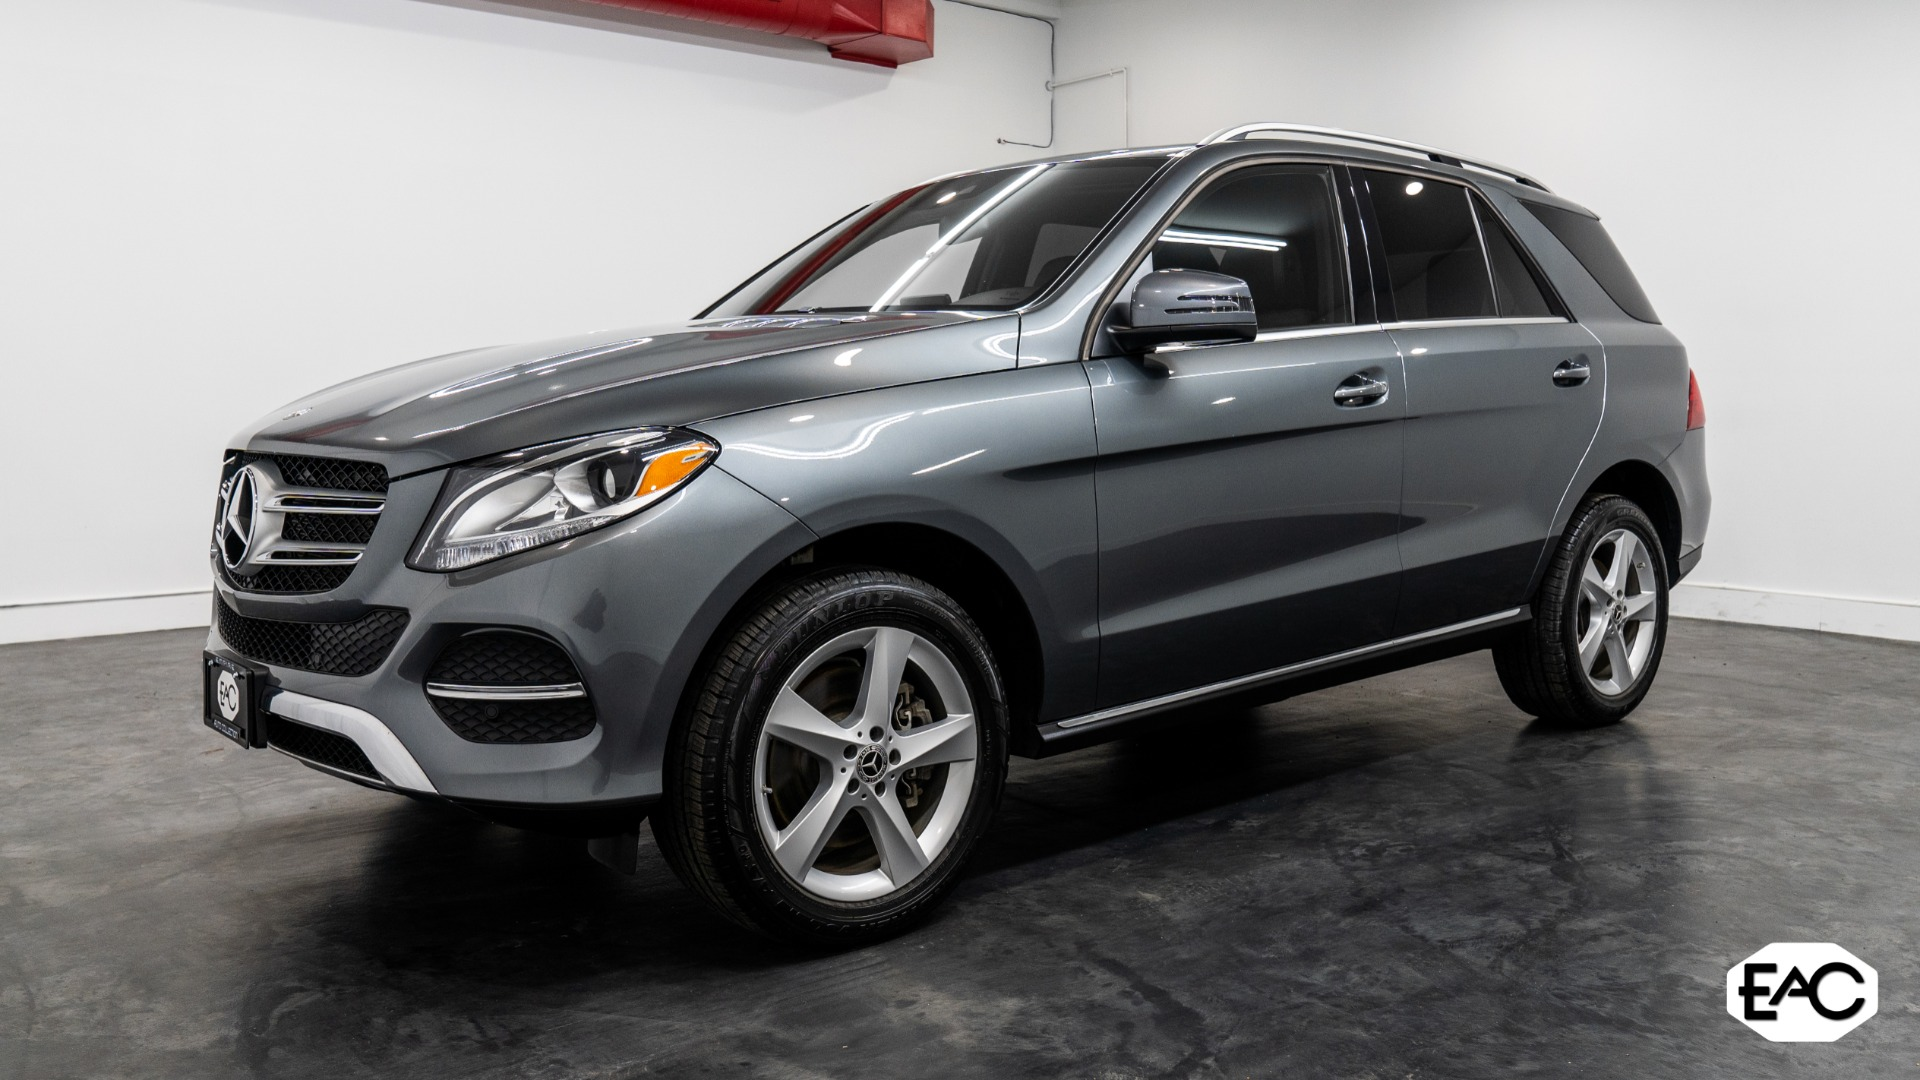 Used 2019 Mercedes-Benz GLE GLE 400 4MATIC for sale $43,990 at Empire Auto Collection in Warren MI 48091 1